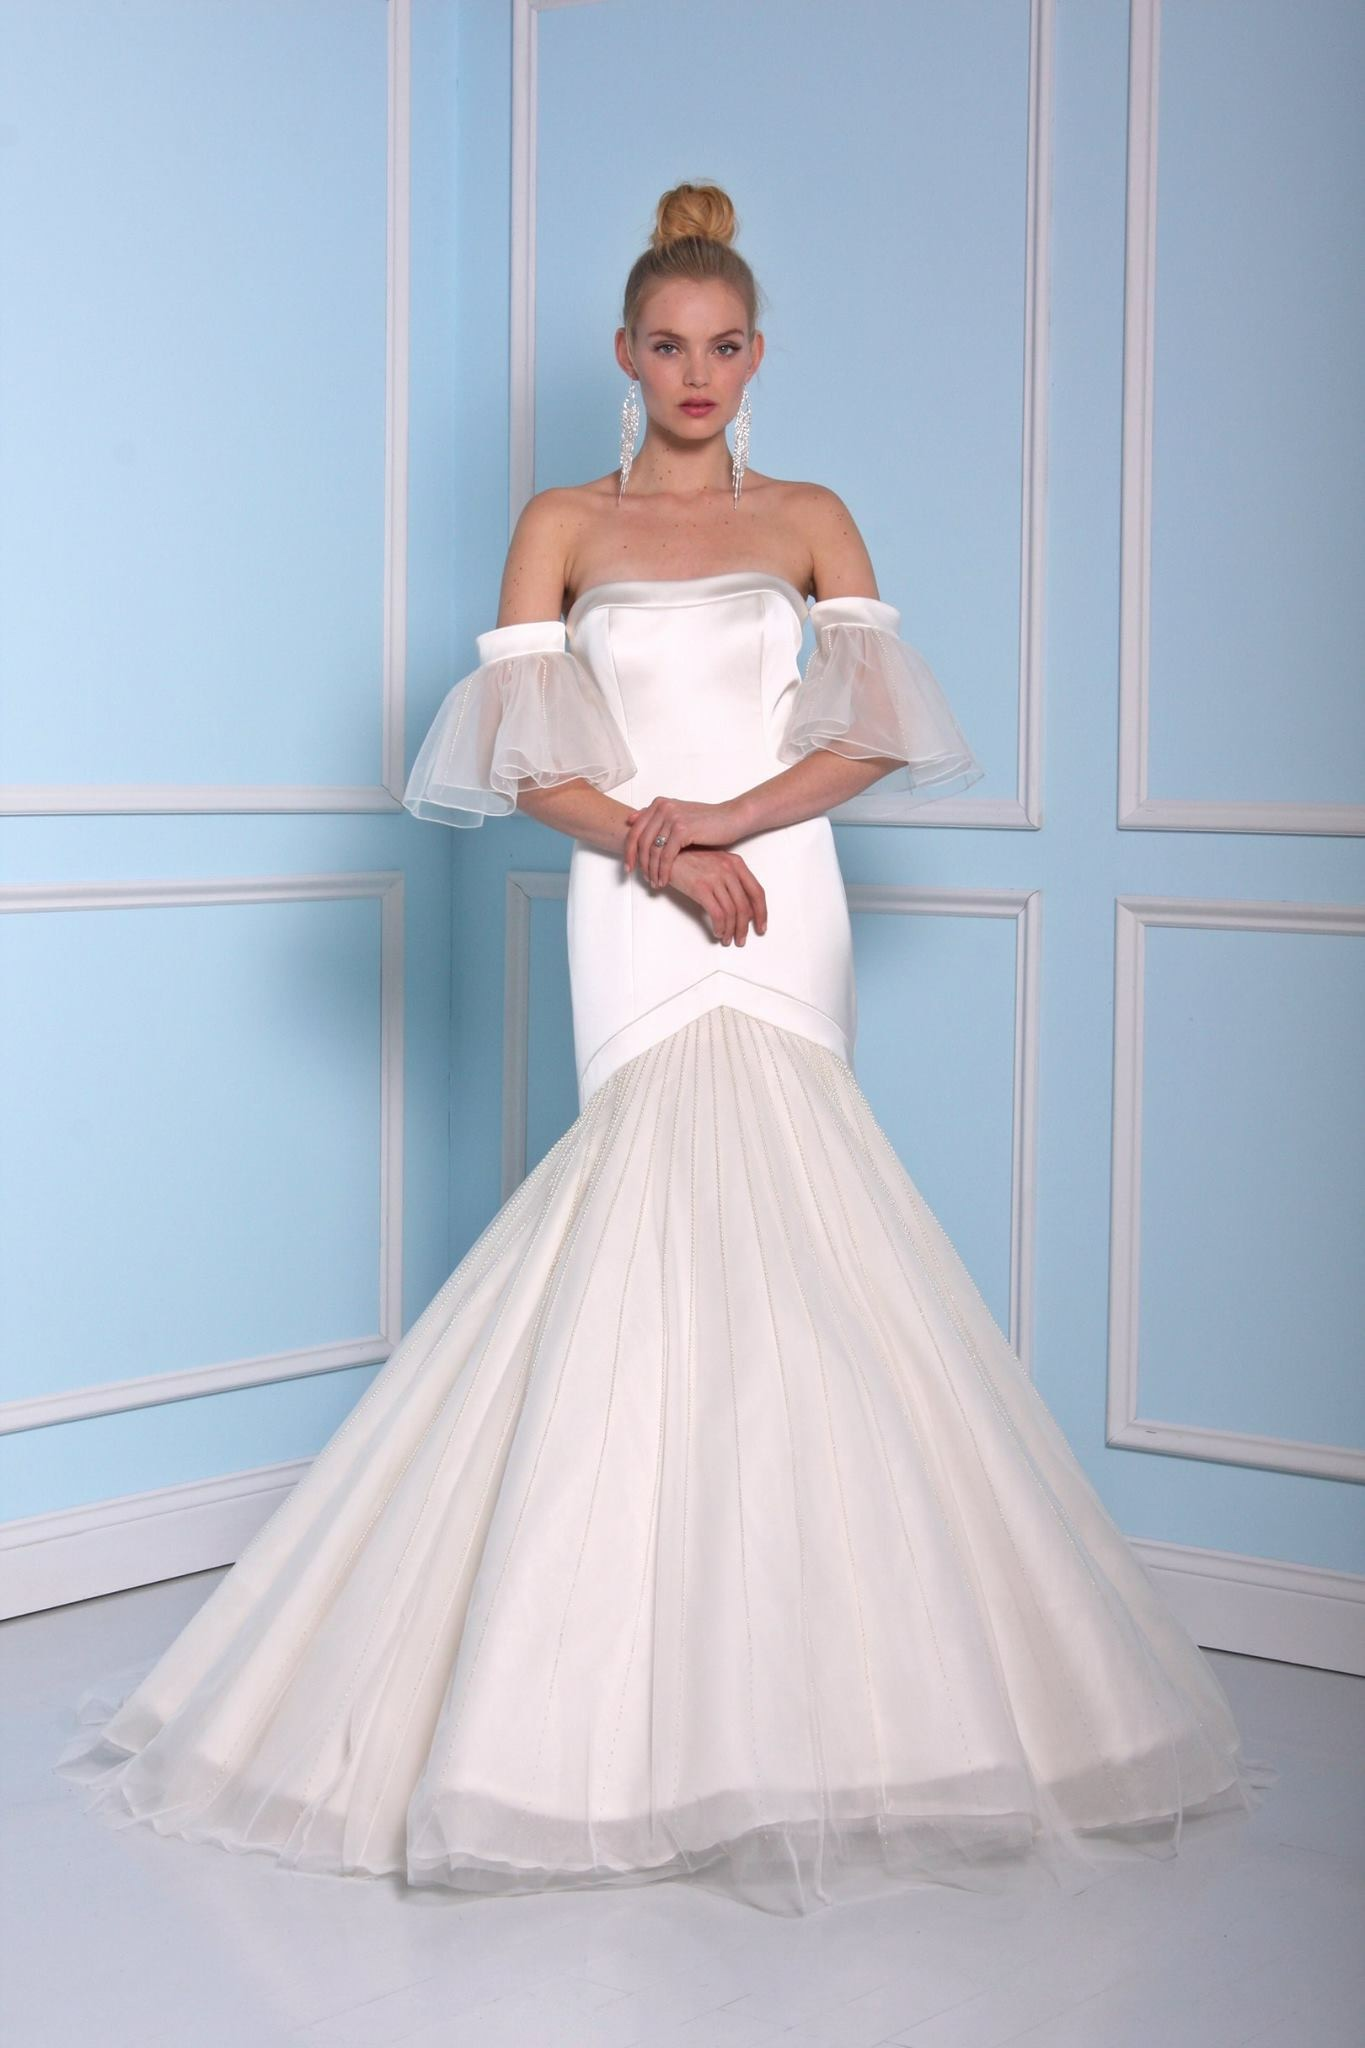 Christian Siriano Launches Bridal Collection – The Fashion Advisory